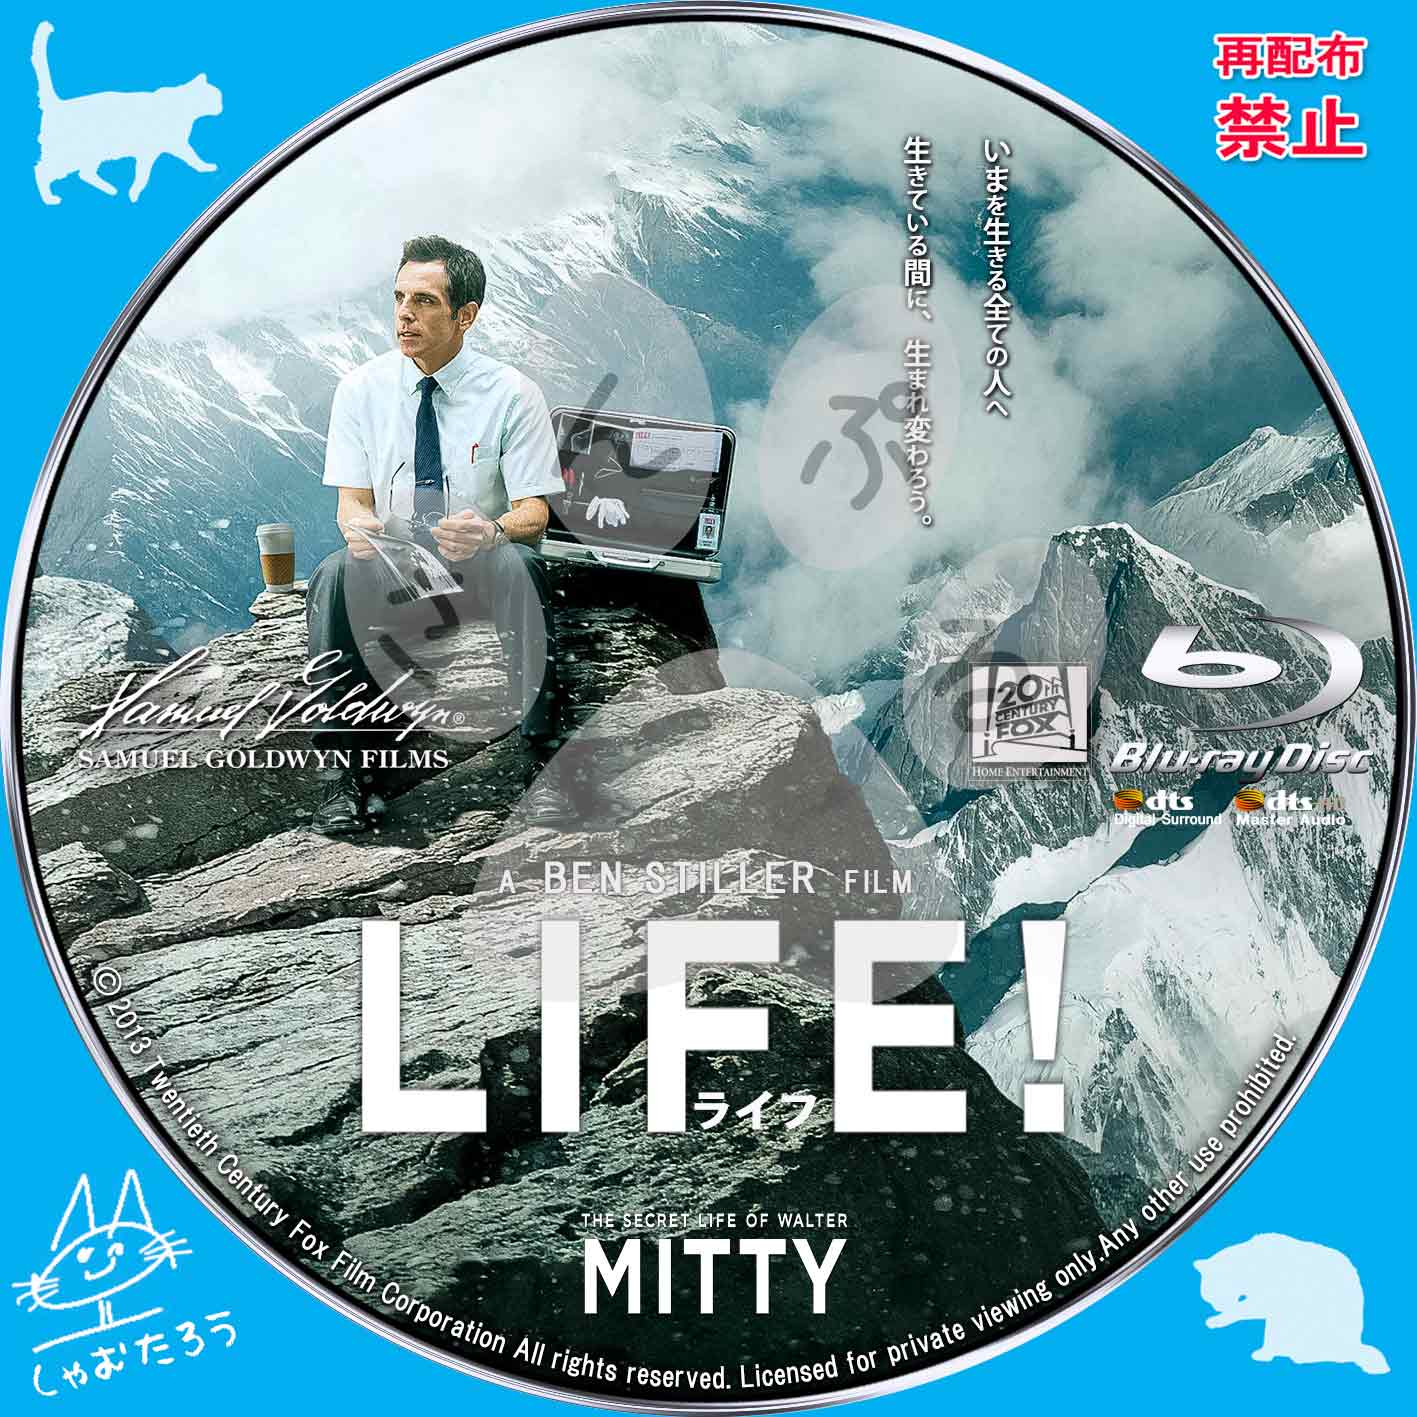 the secret life of walter mitty 中文 版